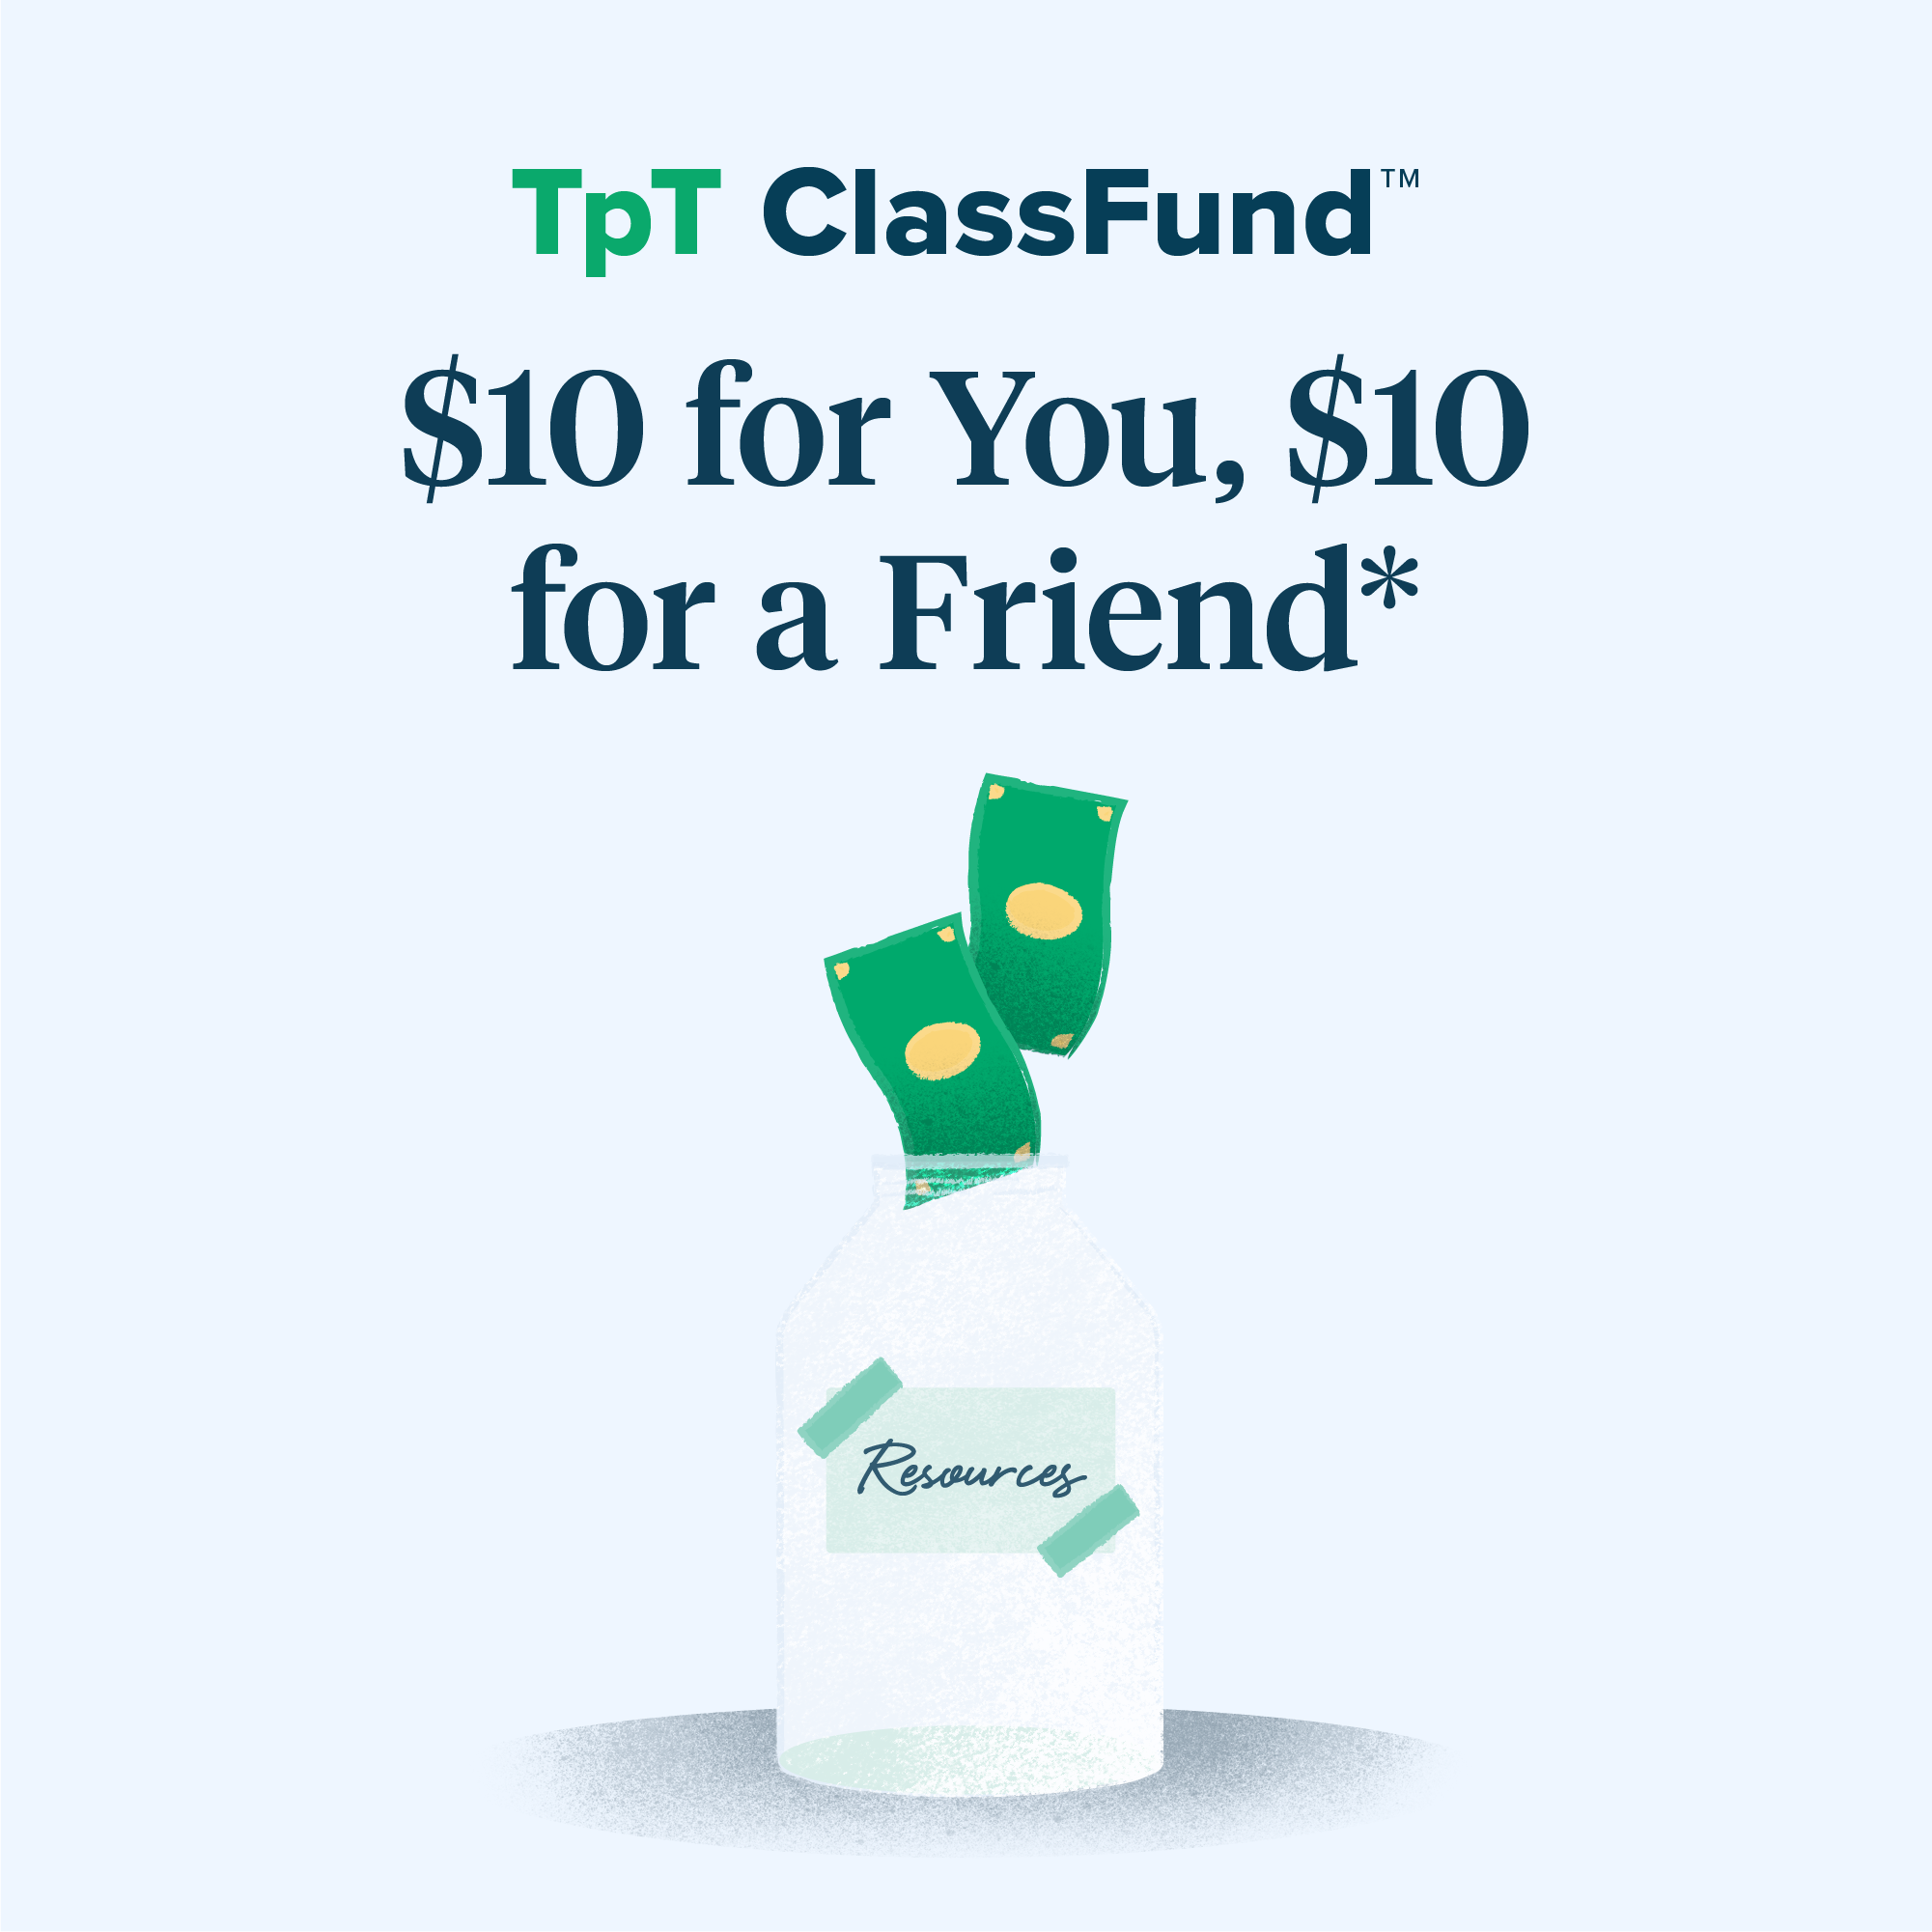 $10 for You, $10 for a Friend*